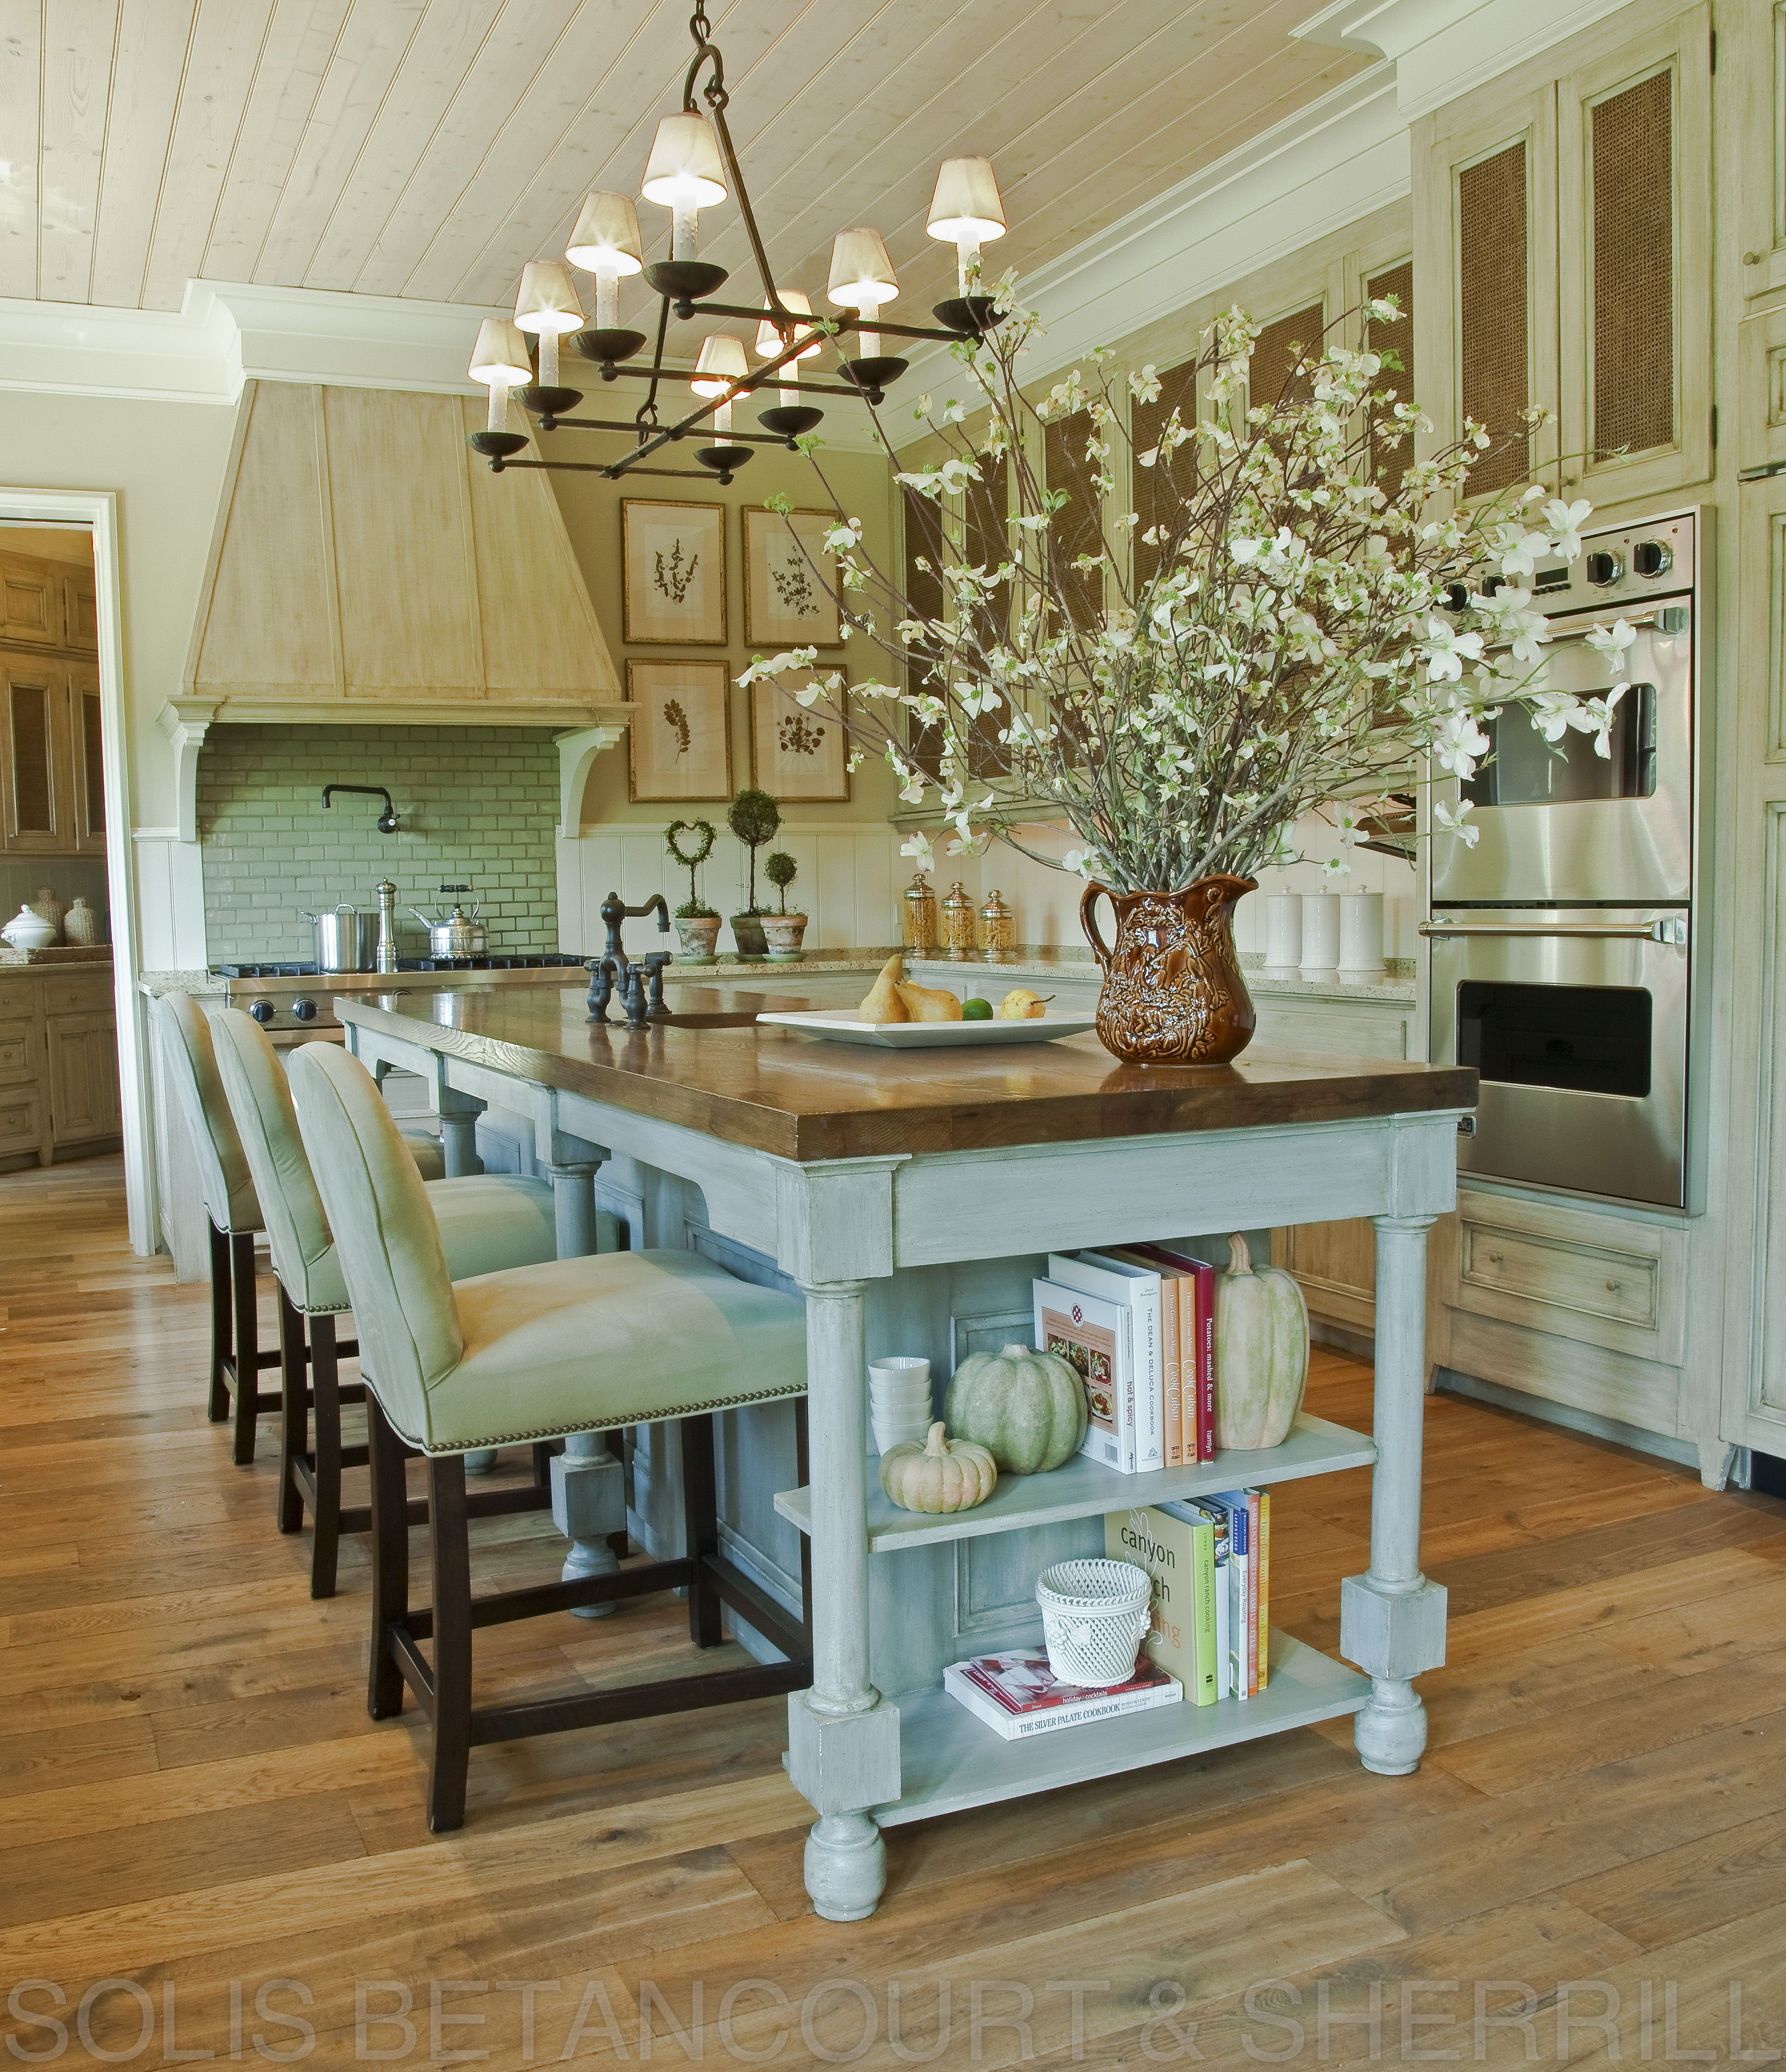 A wonderful kitchen for entertaining family and friends antiqued